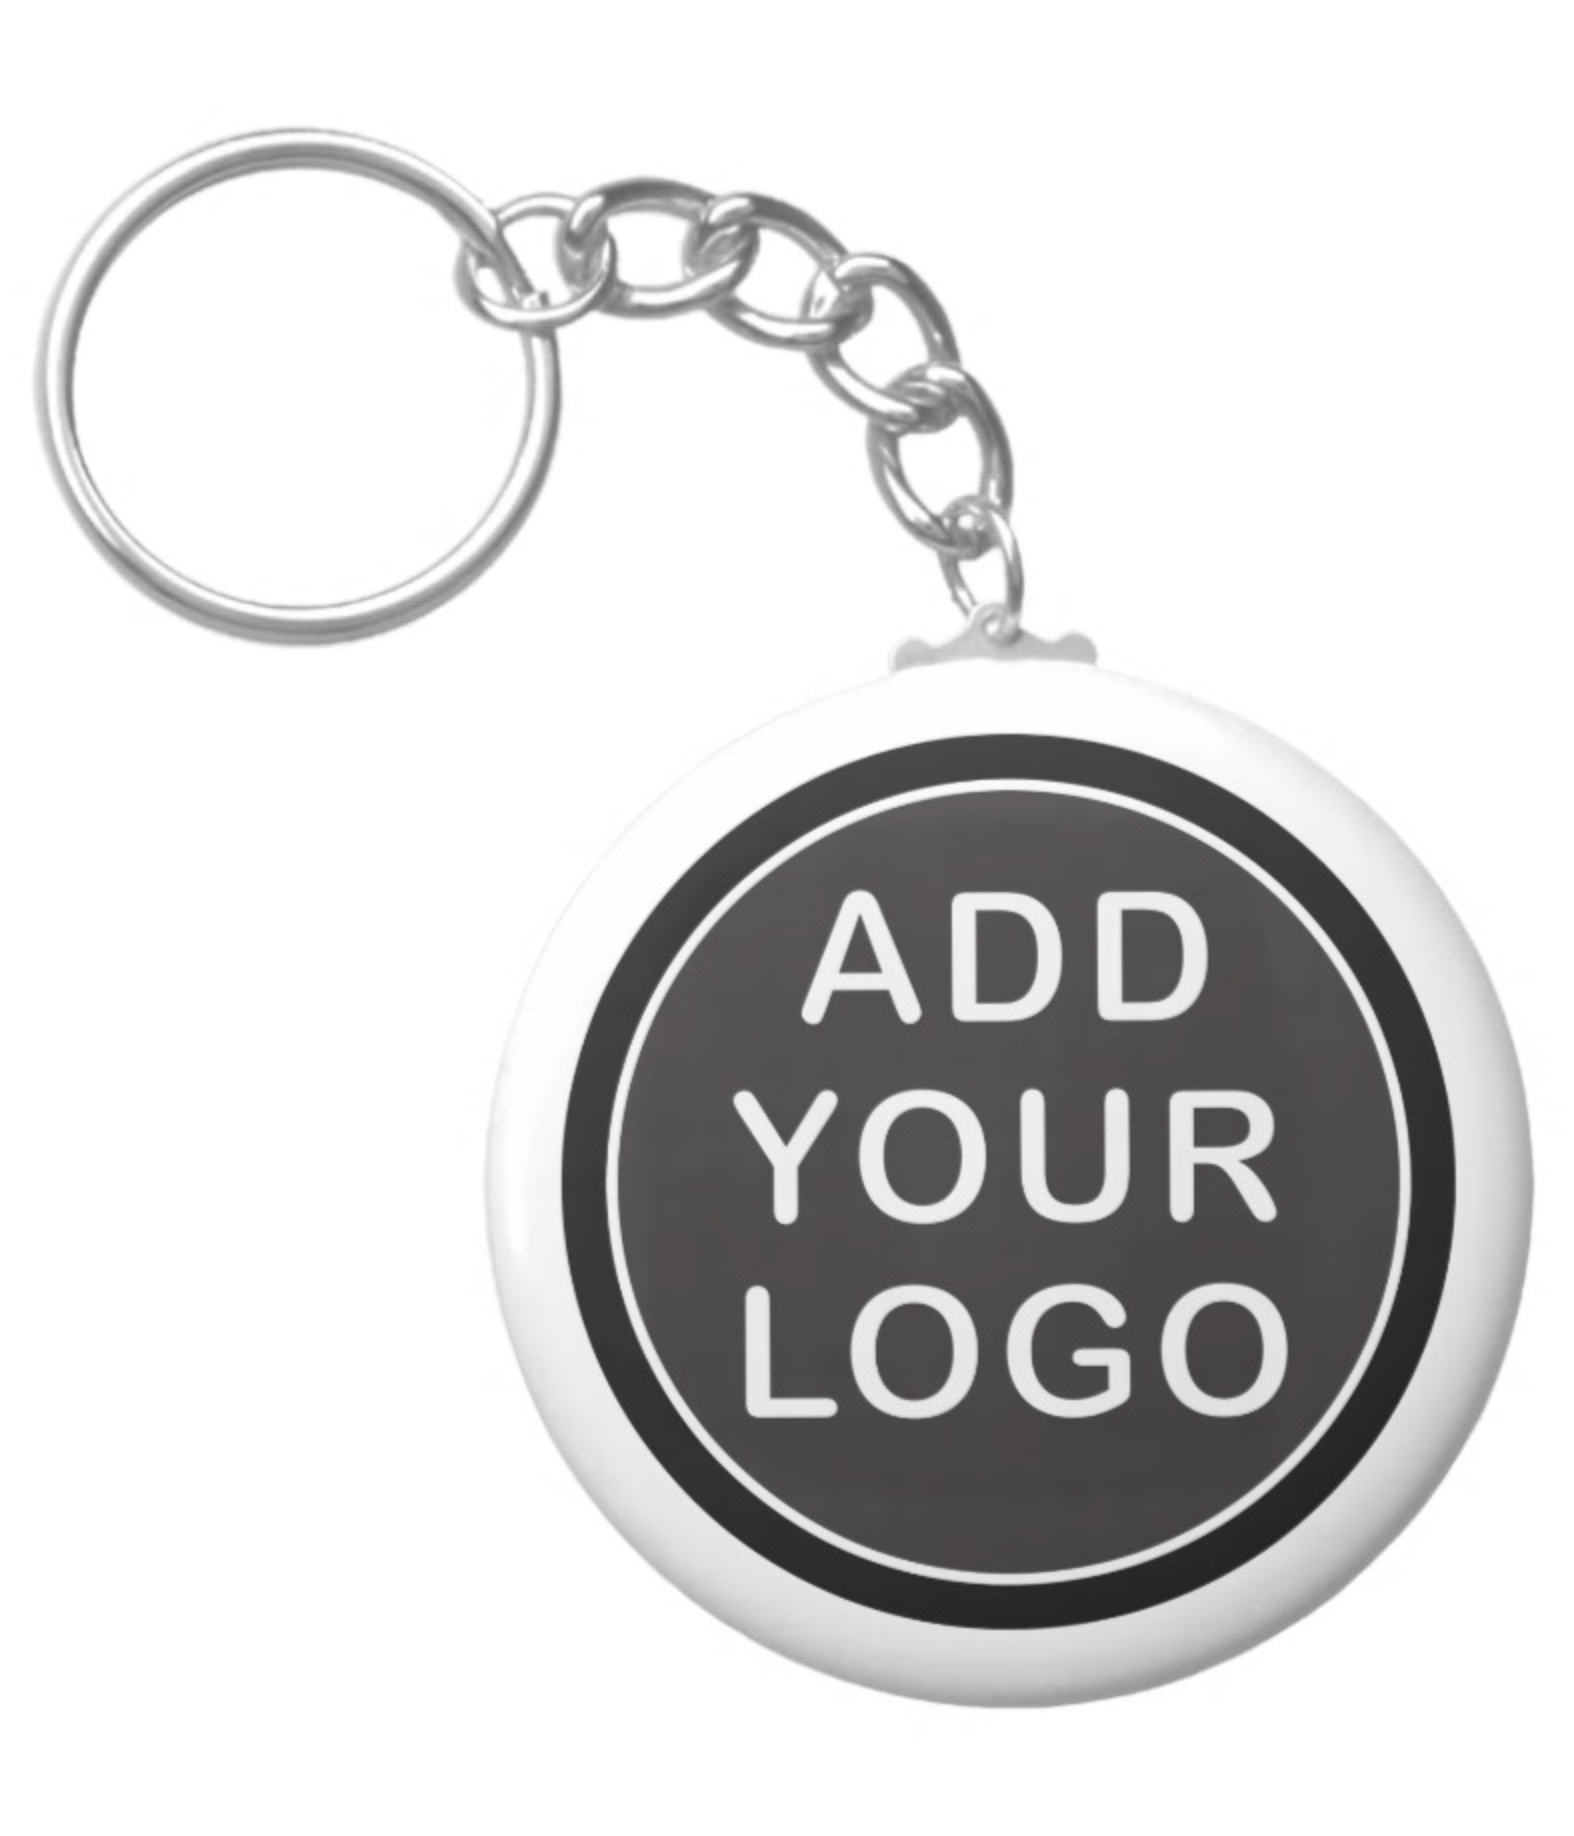 Add your own logo keychain Keychain, Logos, Ads